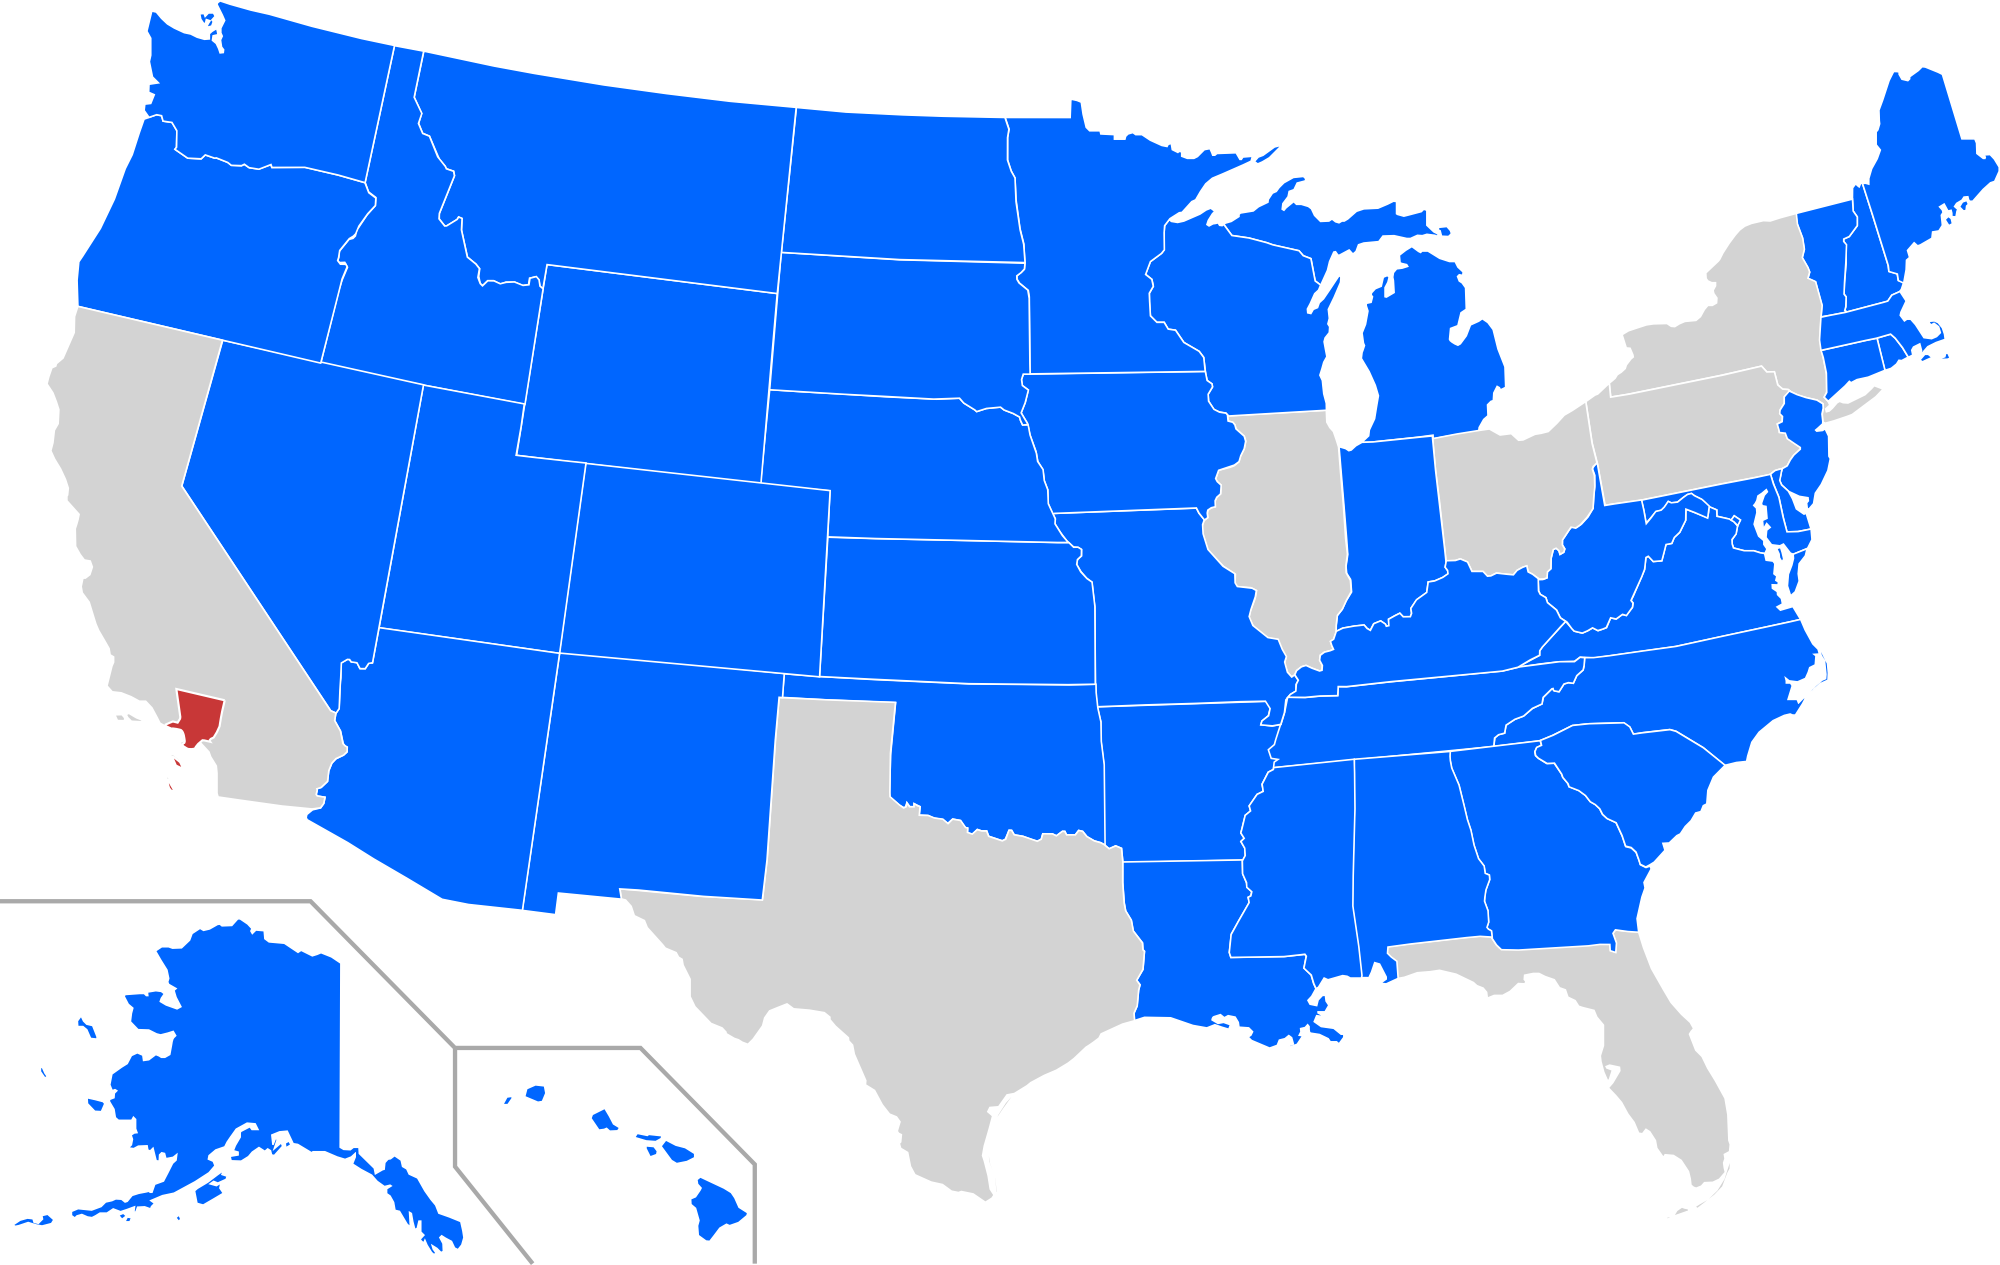 States With A Smaller Population Than The 10 Million Inhabitants Of Los Angeles County The Most